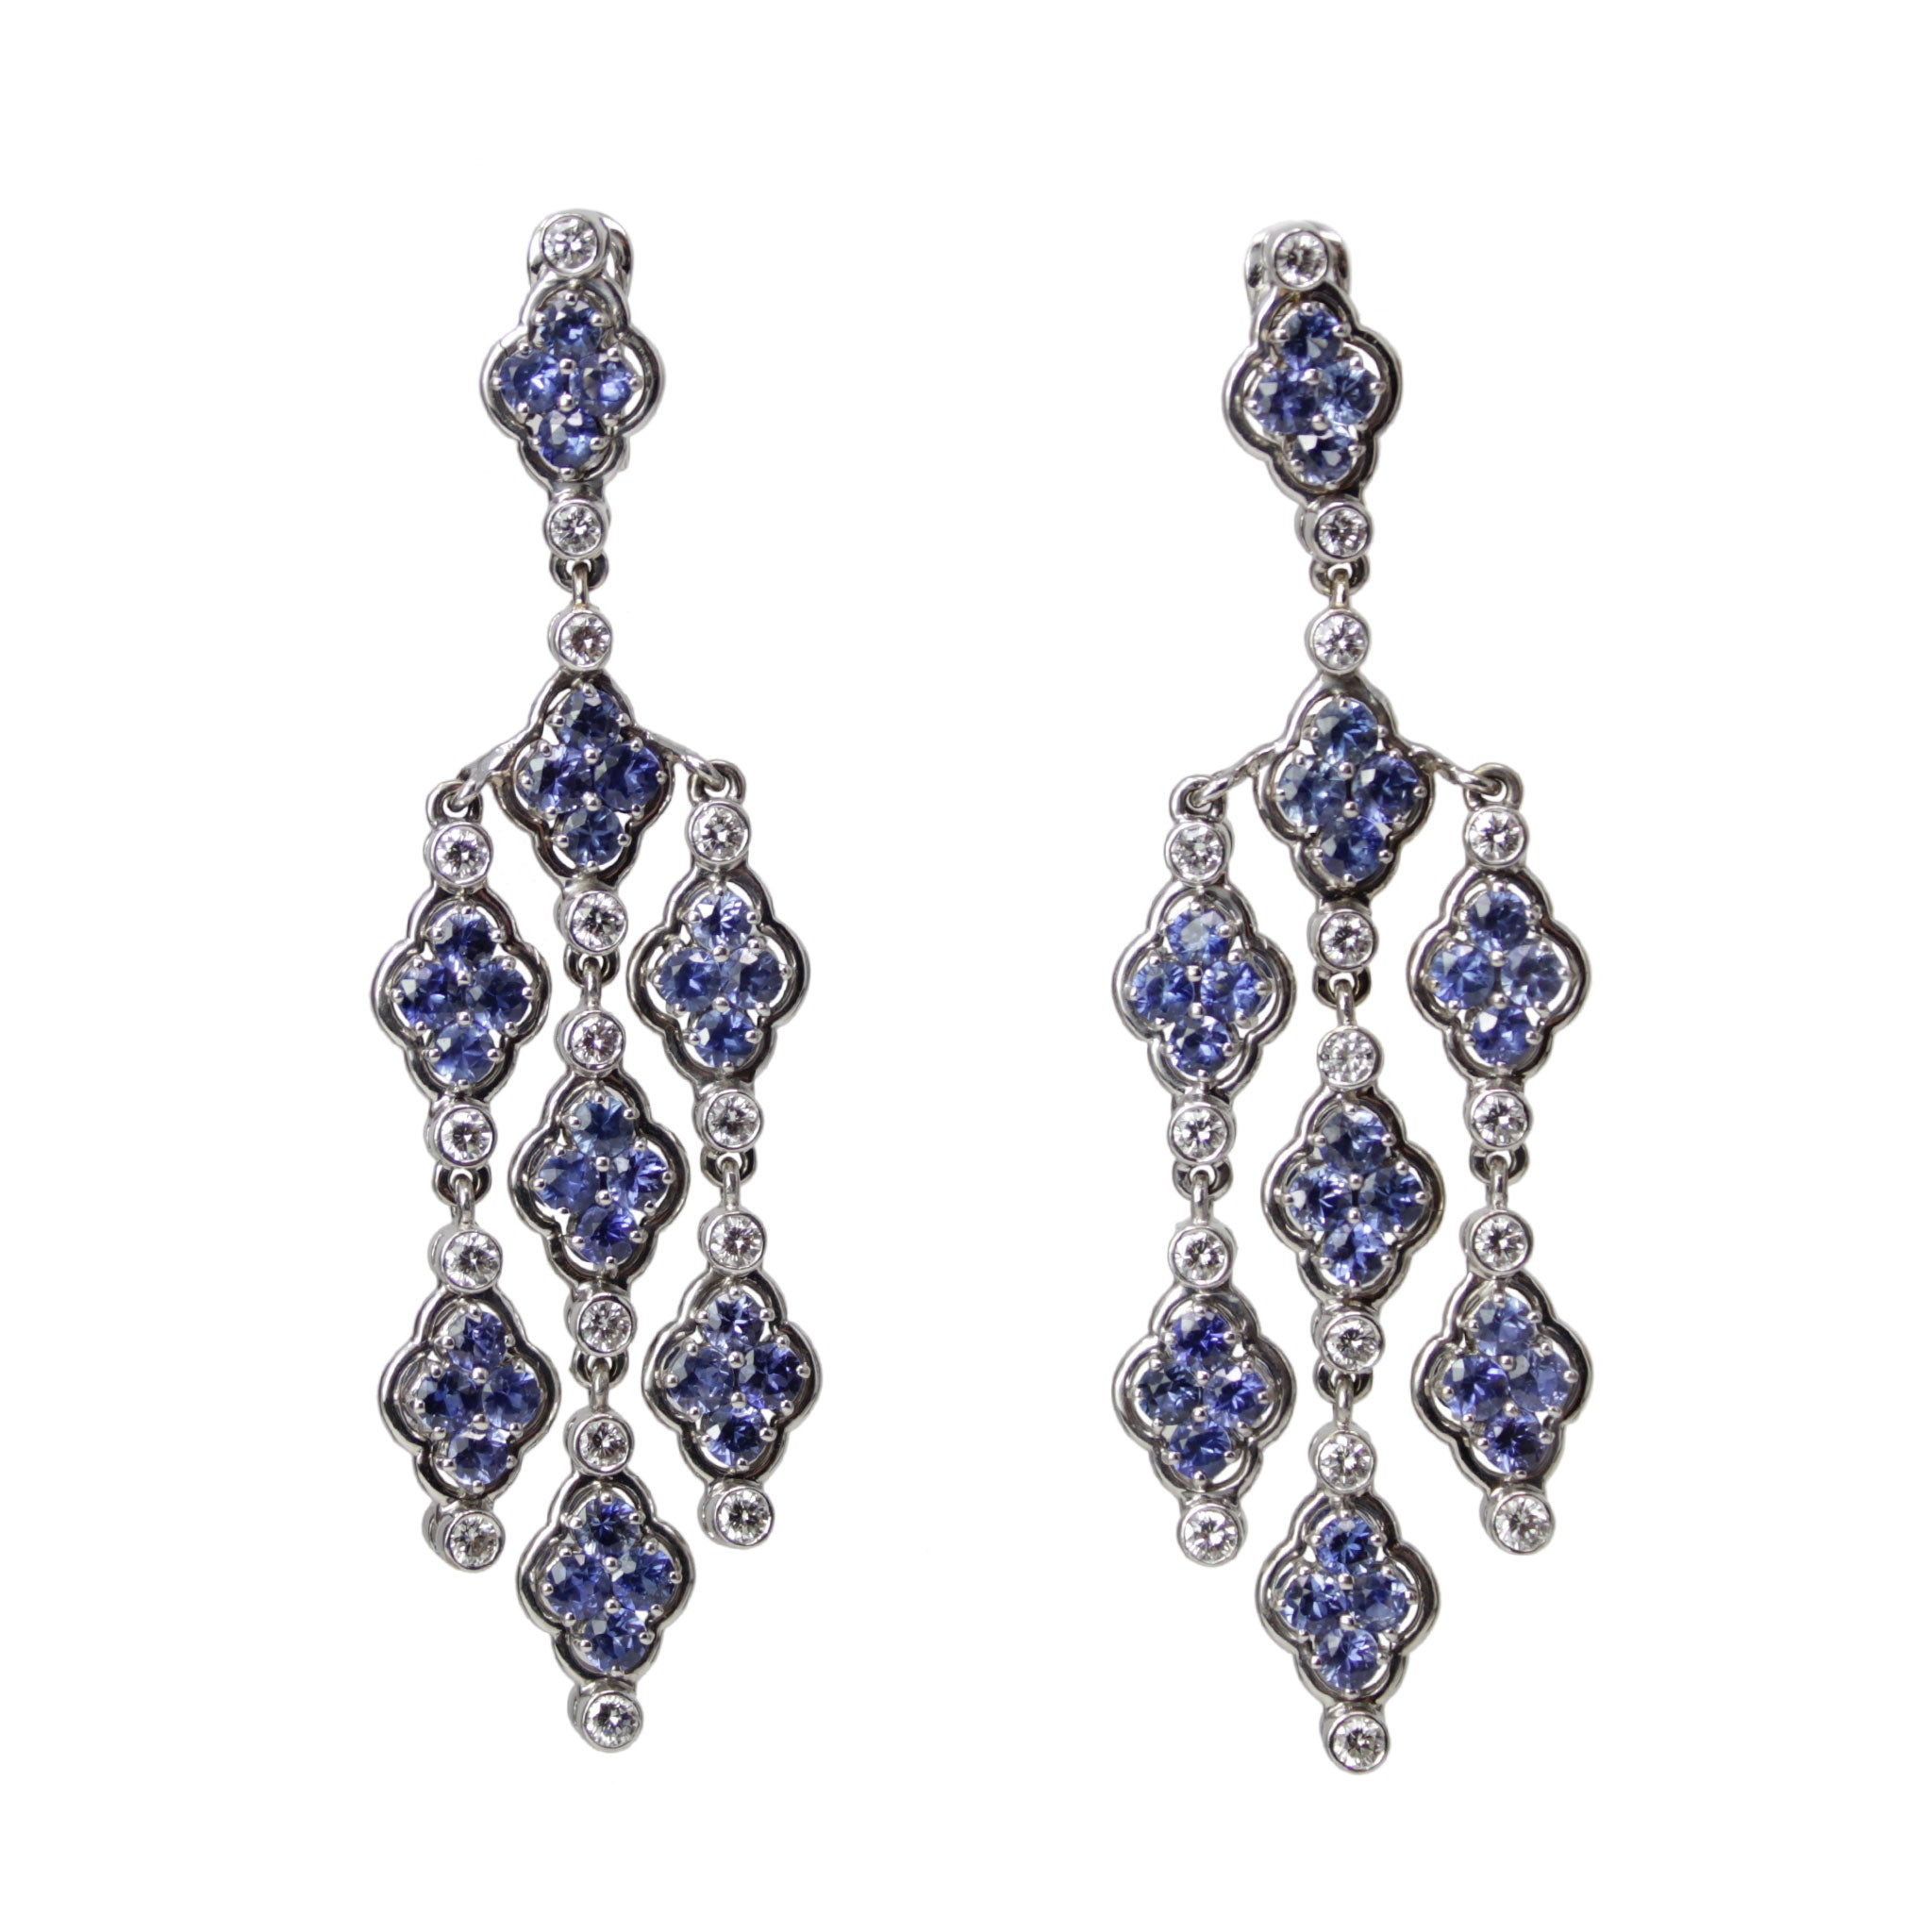 Wisteria Earrings - Blue Sapphire and Diamond Long Chandelier Earrings 18k White Gold Double Sided Clip or Pierced